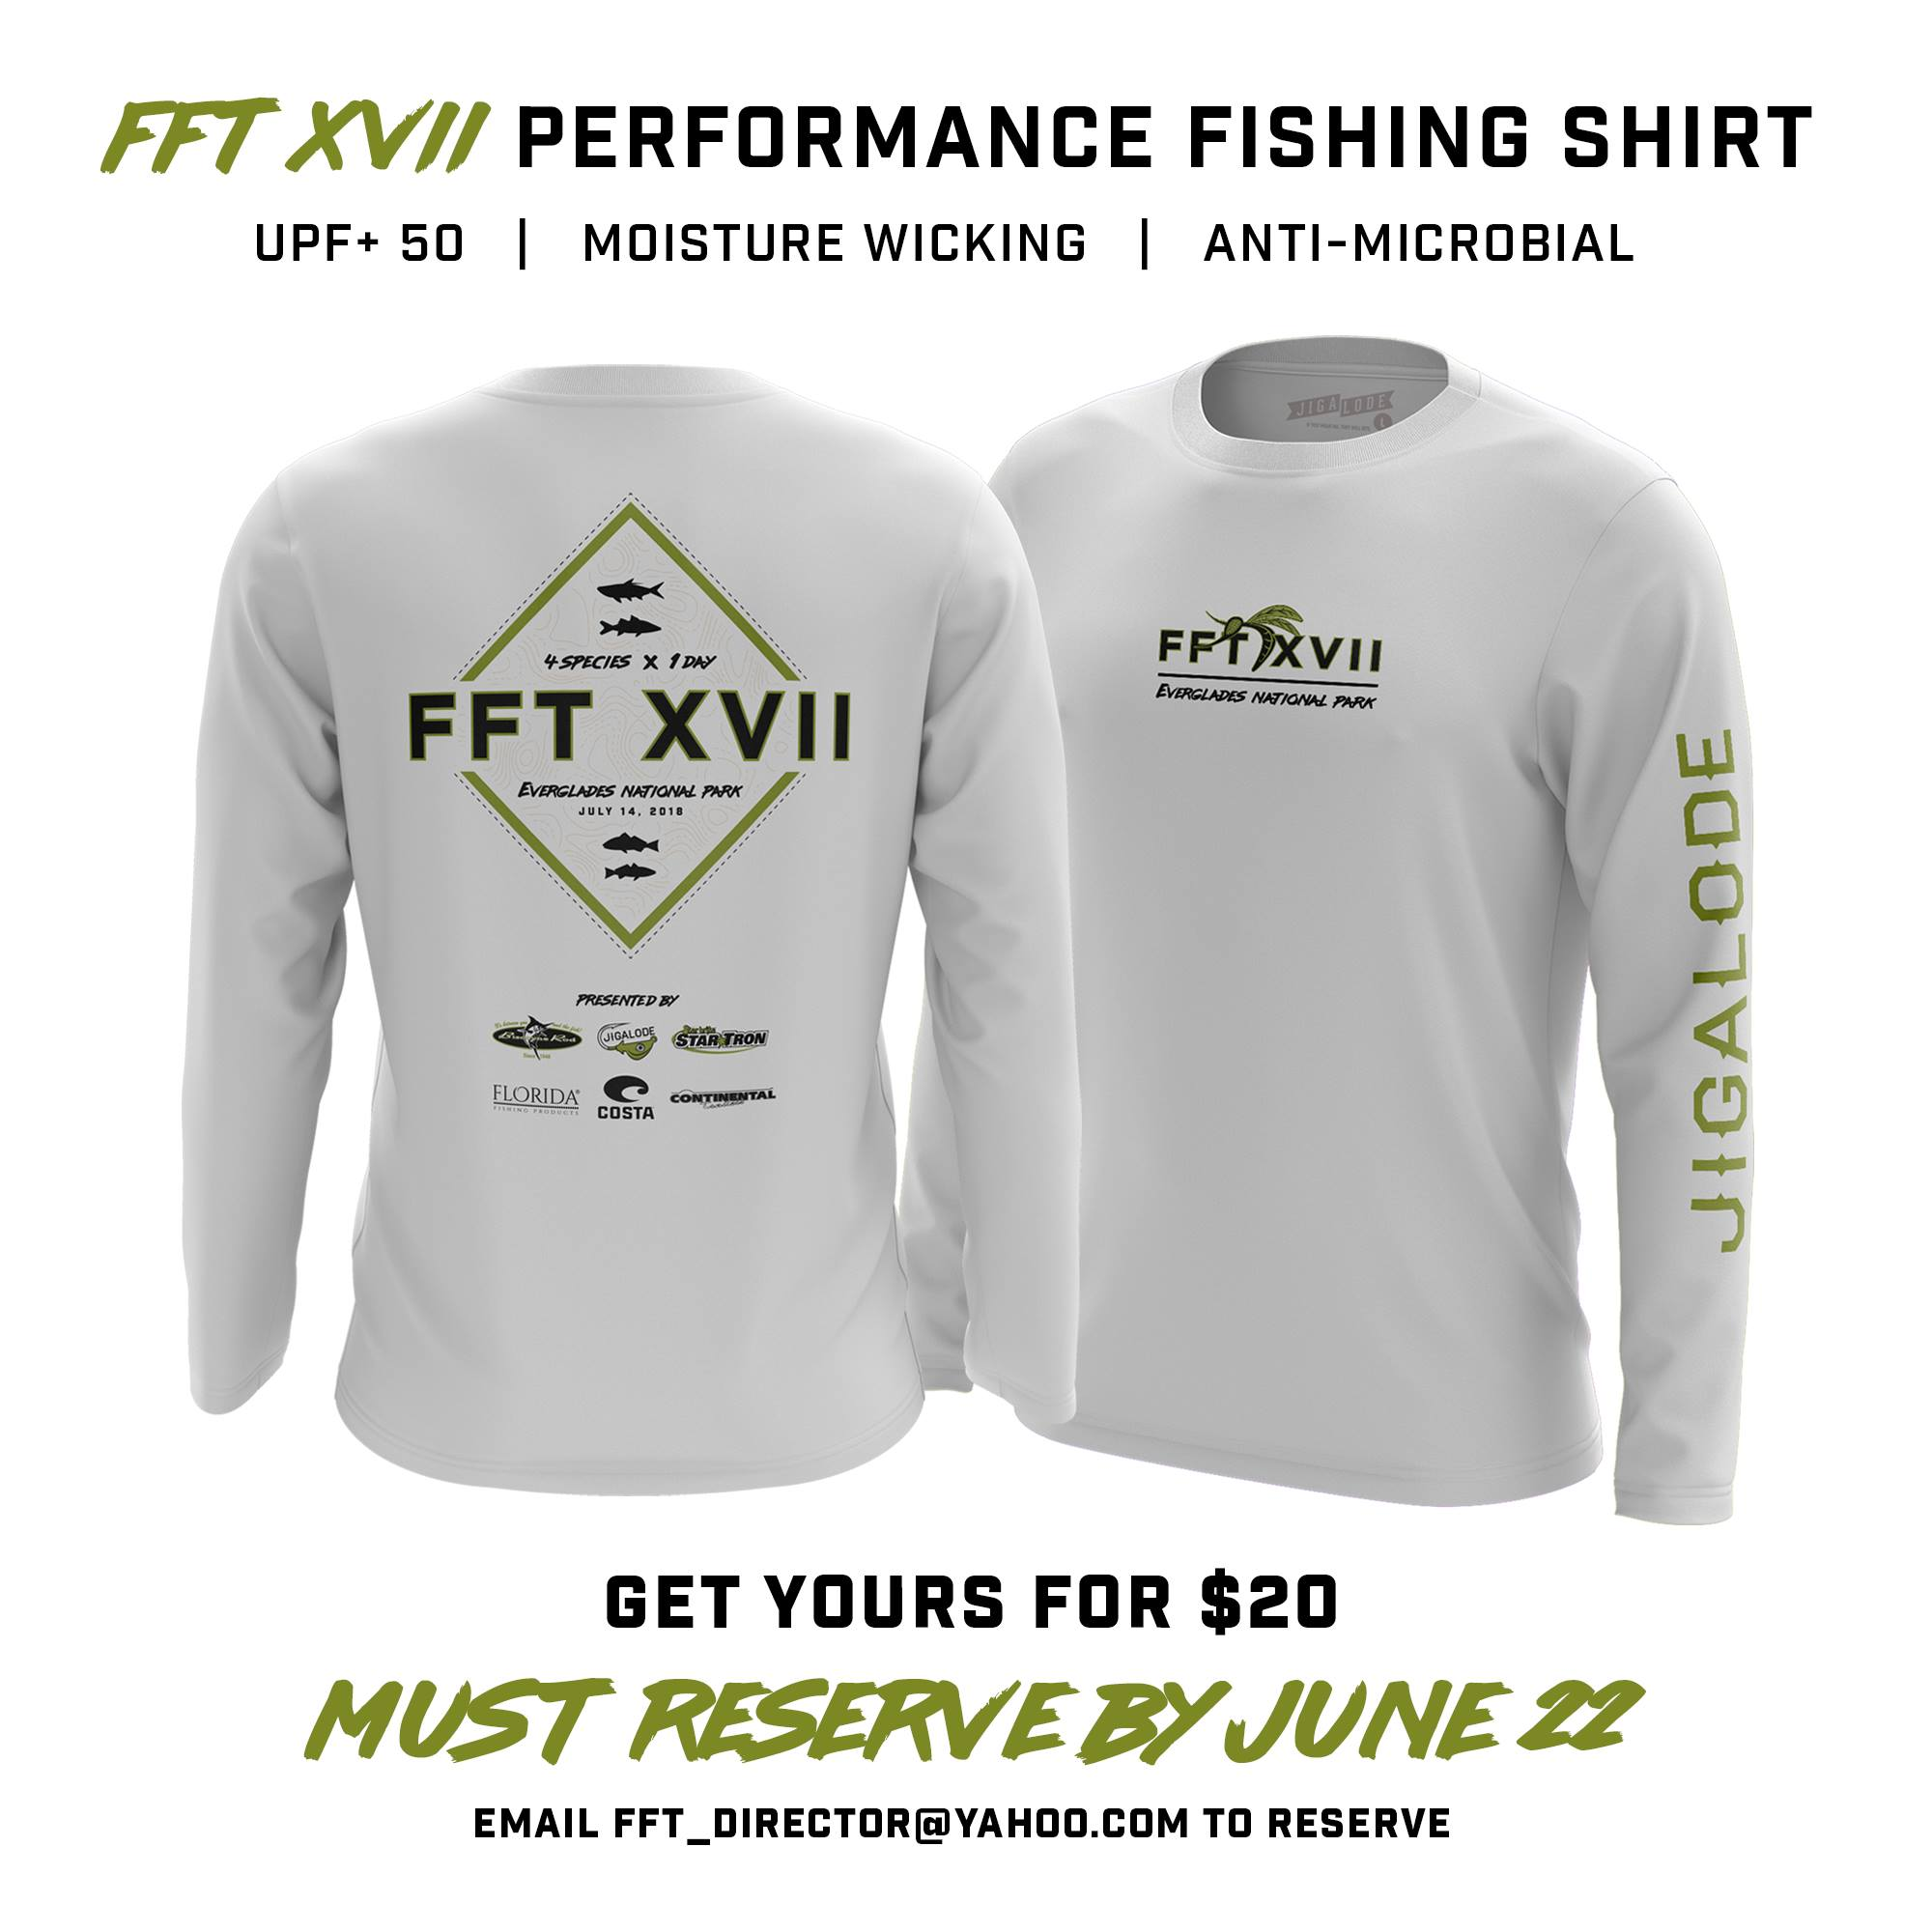 Friendly Flamingo Tournament, Performance Fishing Shirt, Everglades, Sun Shirt, Tournament, Fishing, Fly Fishing, Tarpon, Snook, Redfish, Trout